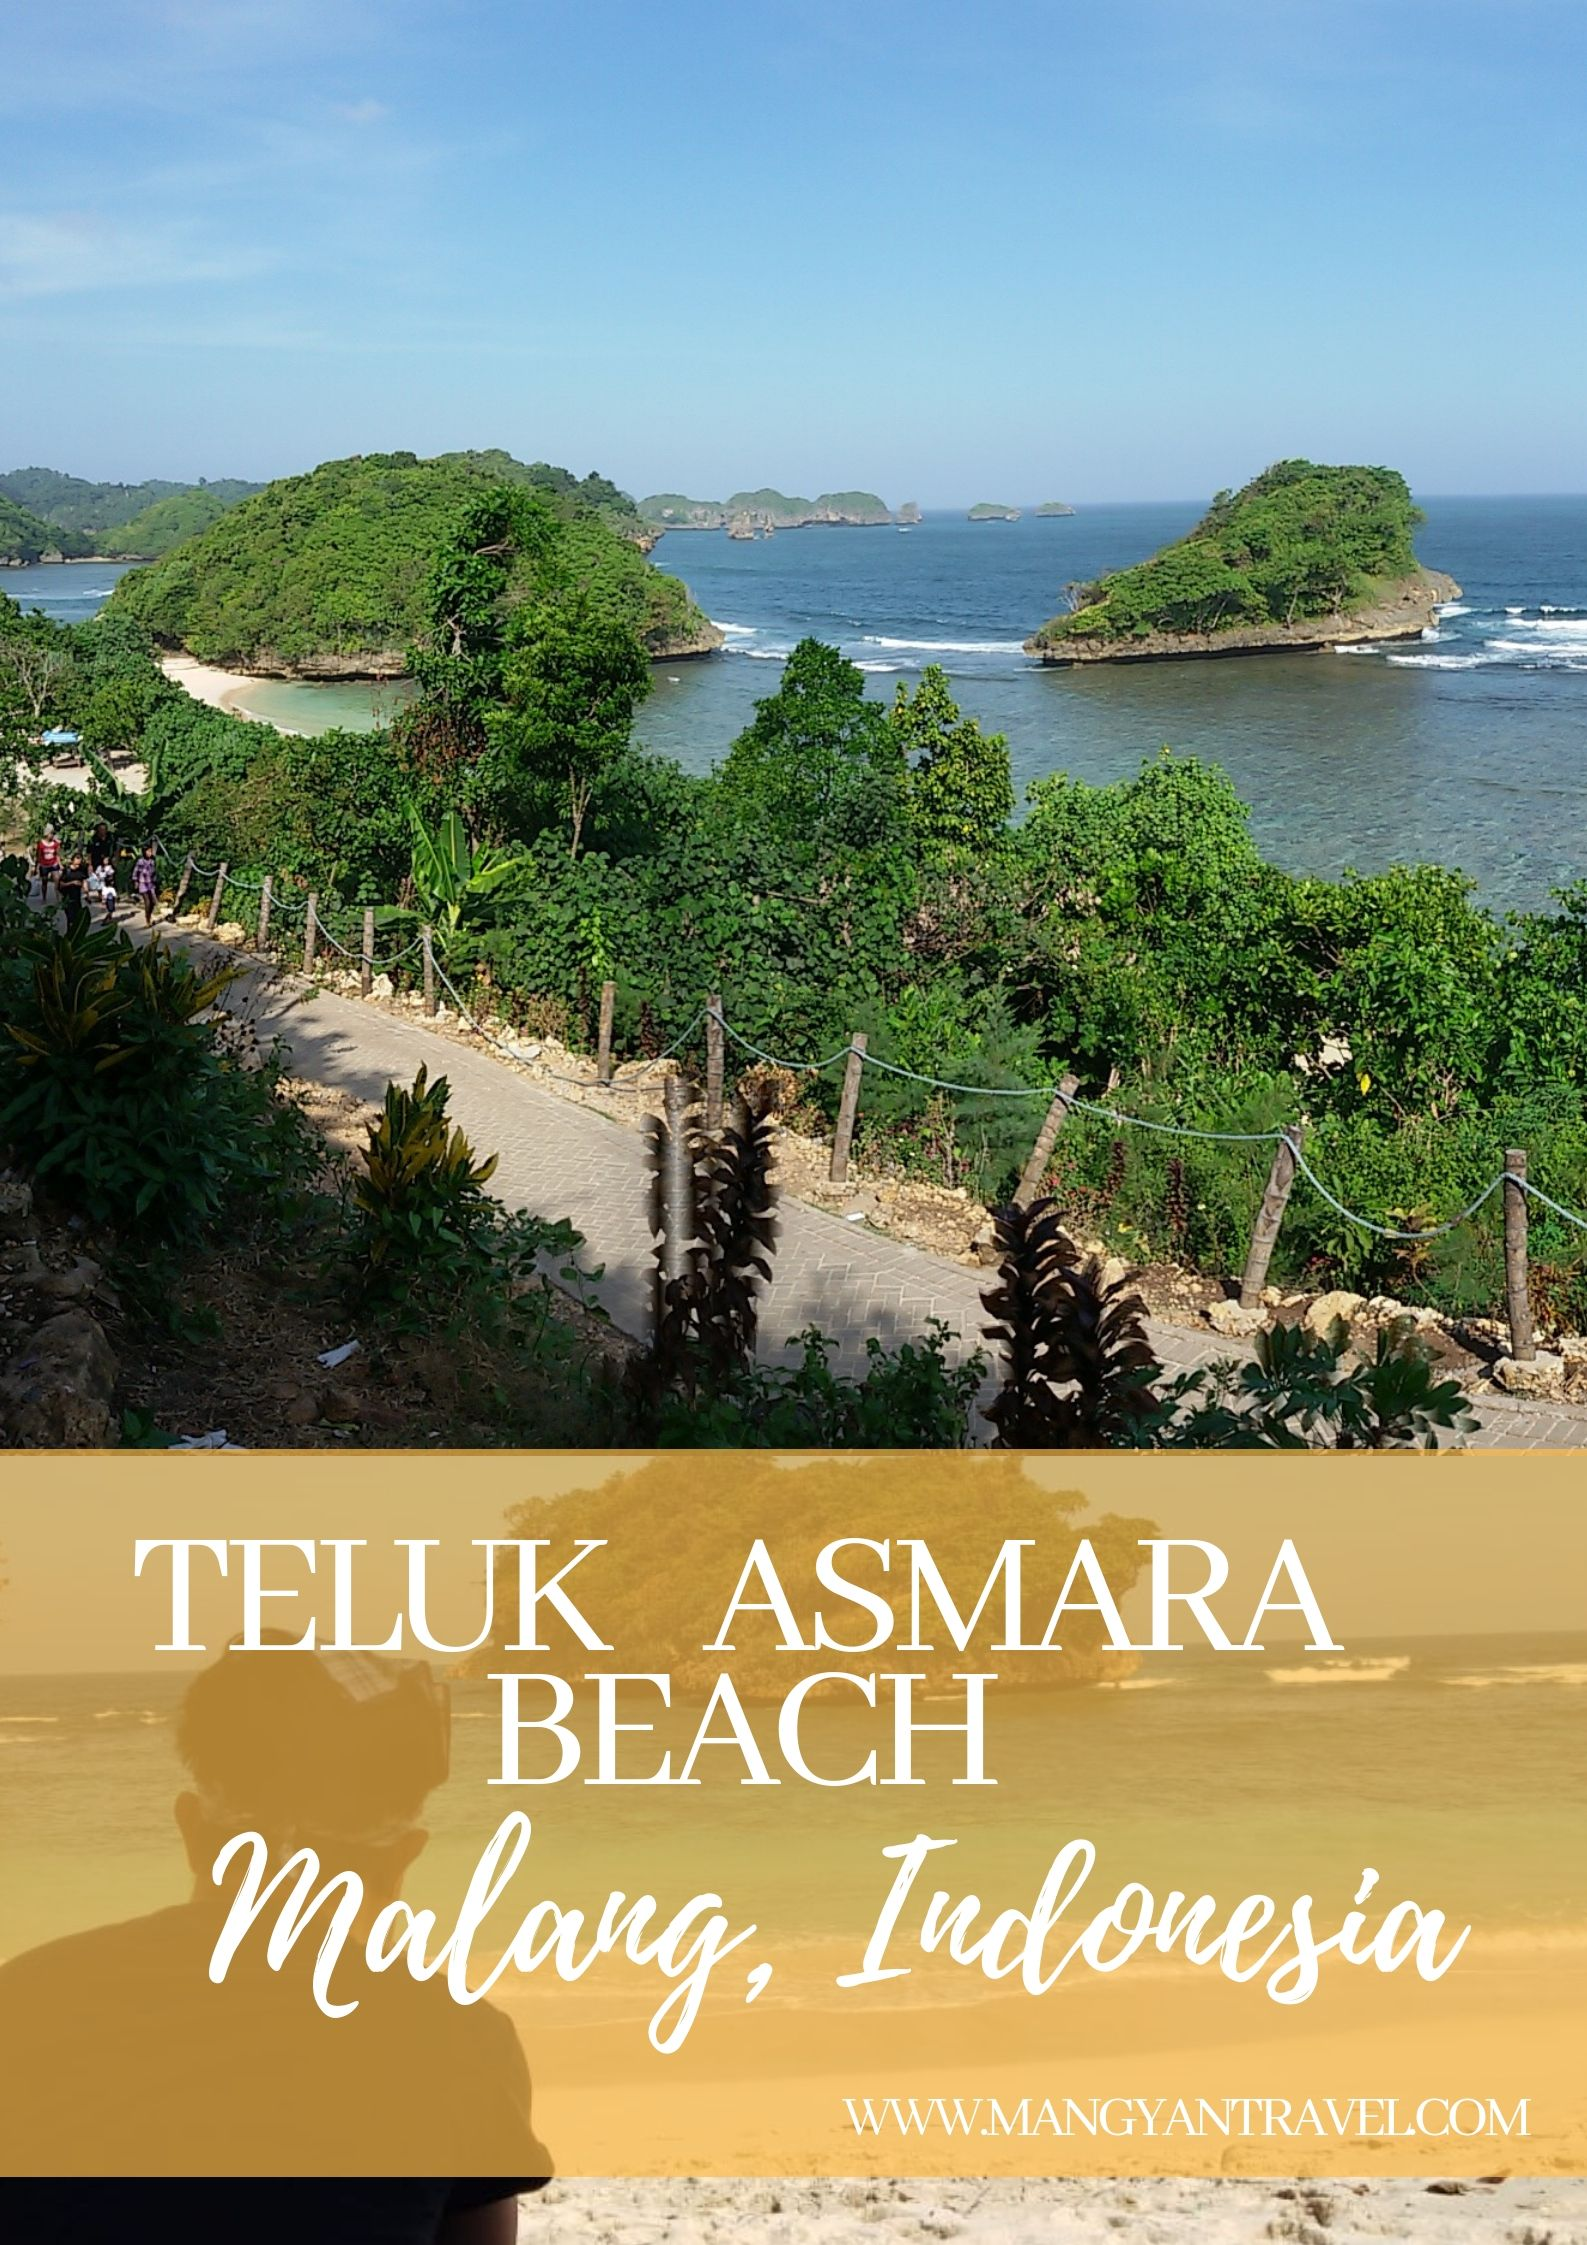 Teluk Asmara Malang : teluk, asmara, malang, Teluk, Asmara, Beach,, Indonesia, Travel,, Holiday, Southeast, Travel